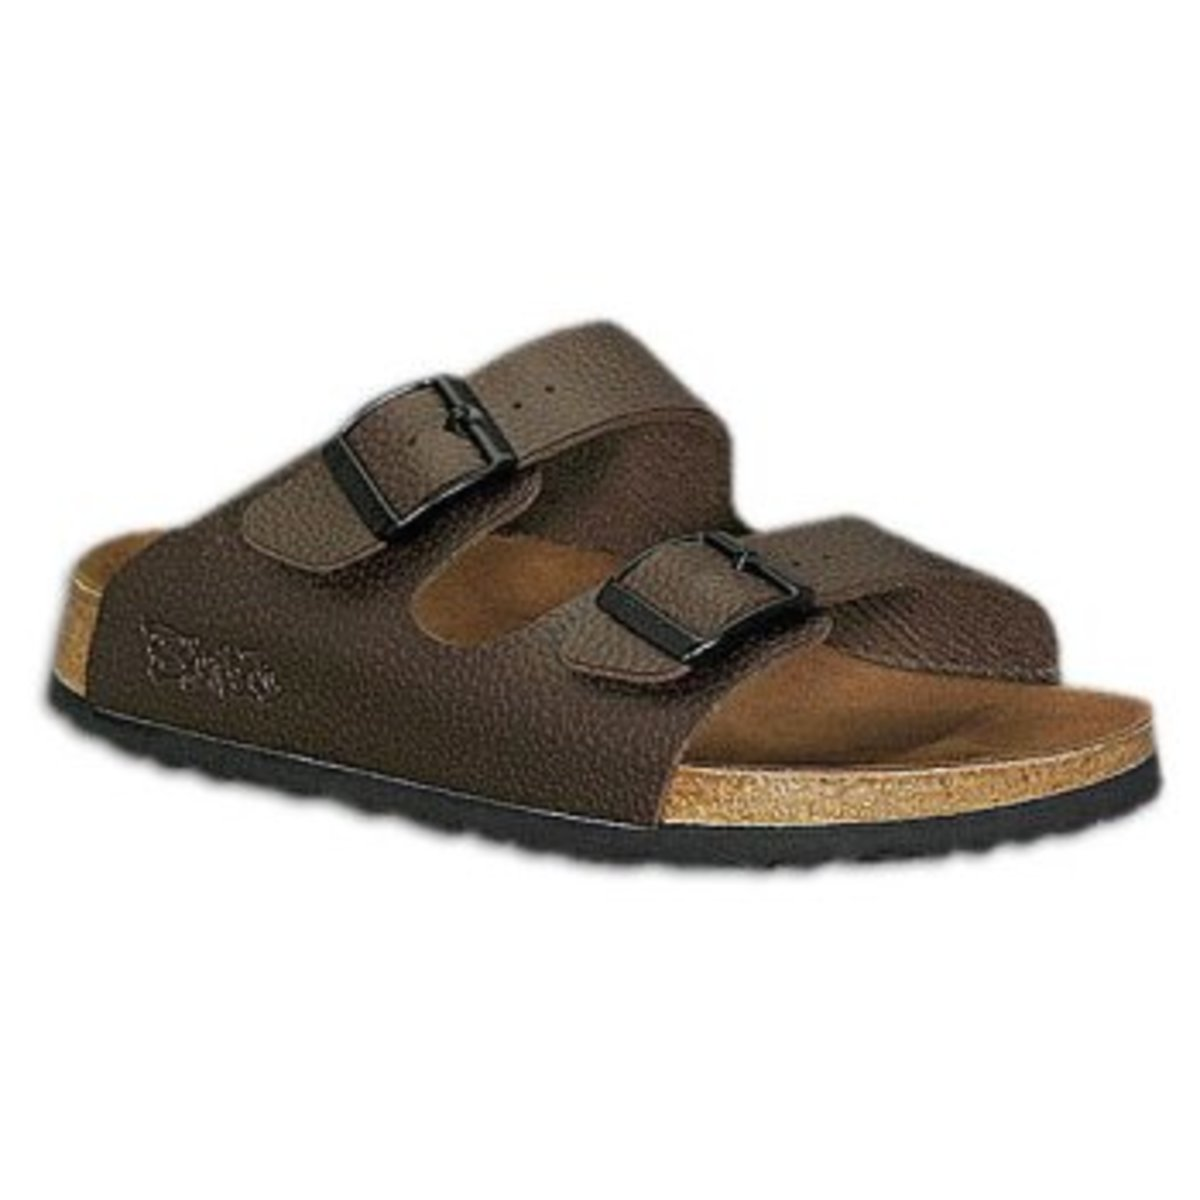 A Typical Birkenstock